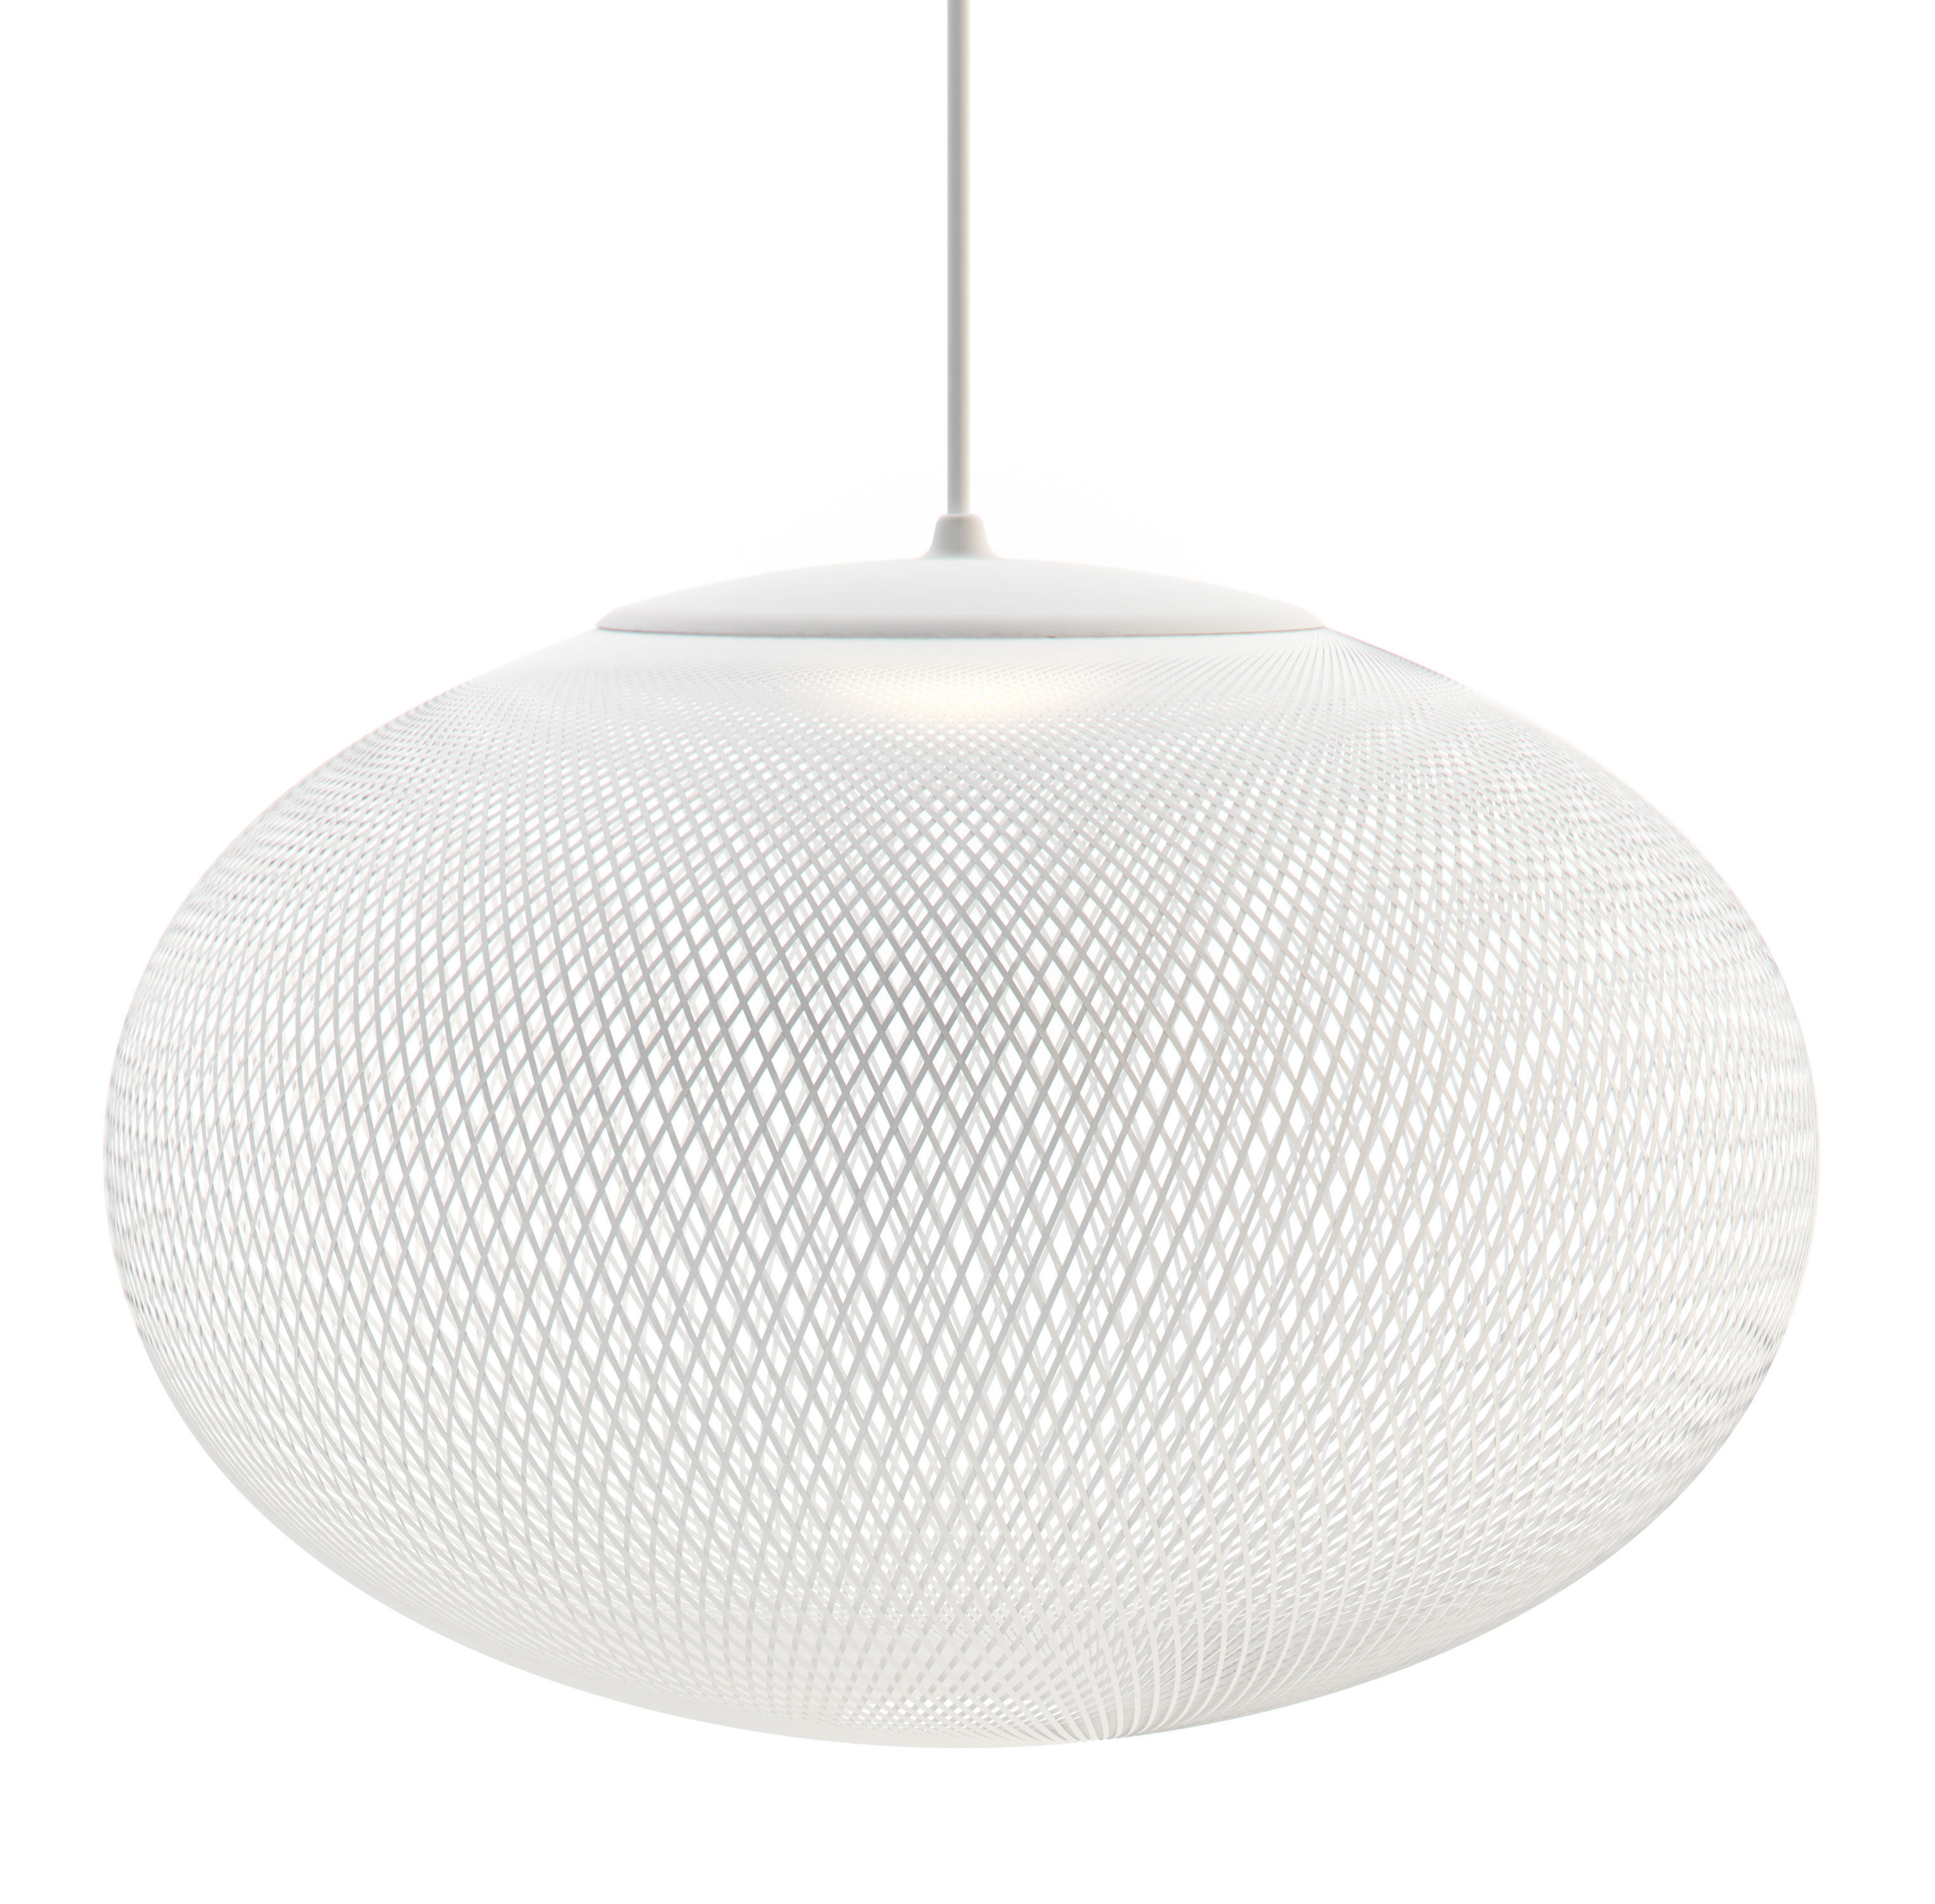 Luminaire - Suspensions - Suspension NR2 Medium LED / Fibre de verre - Ø 55 cm - Moooi - Blanc - Fibre de verre, Plastique